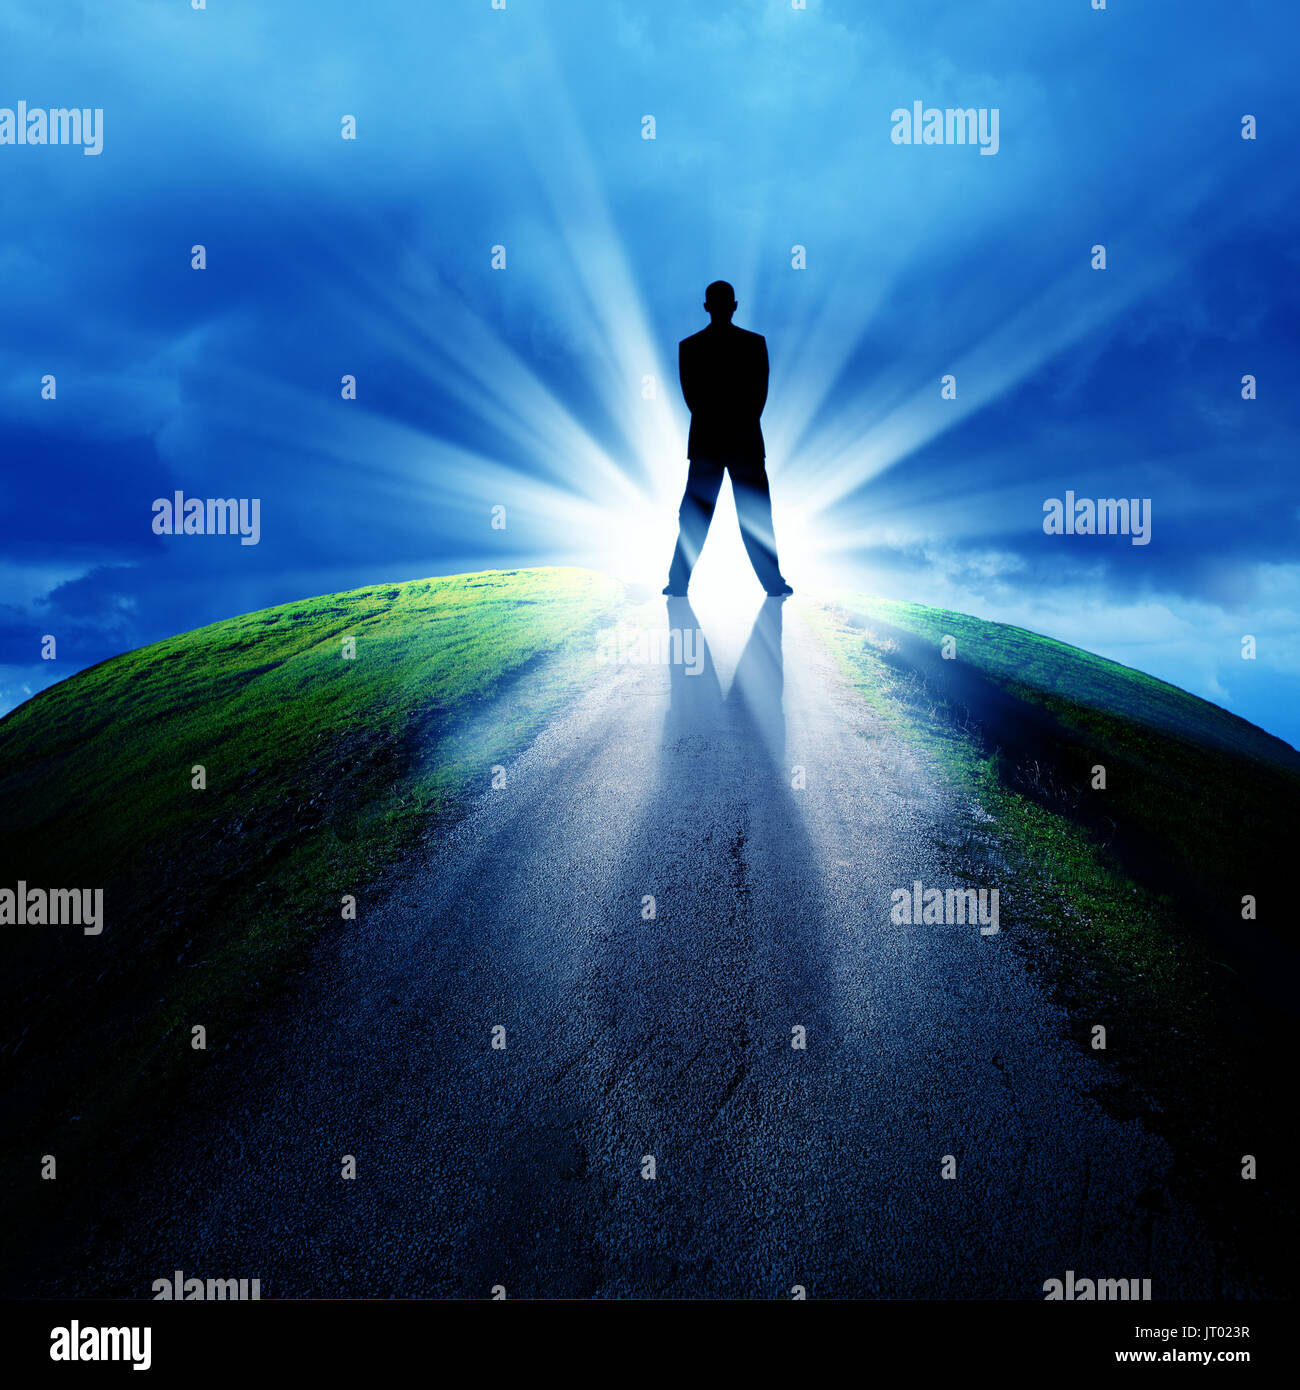 conceptual image of silhouetted businessman on empty road over cloudy sky with beam of light - Stock Image